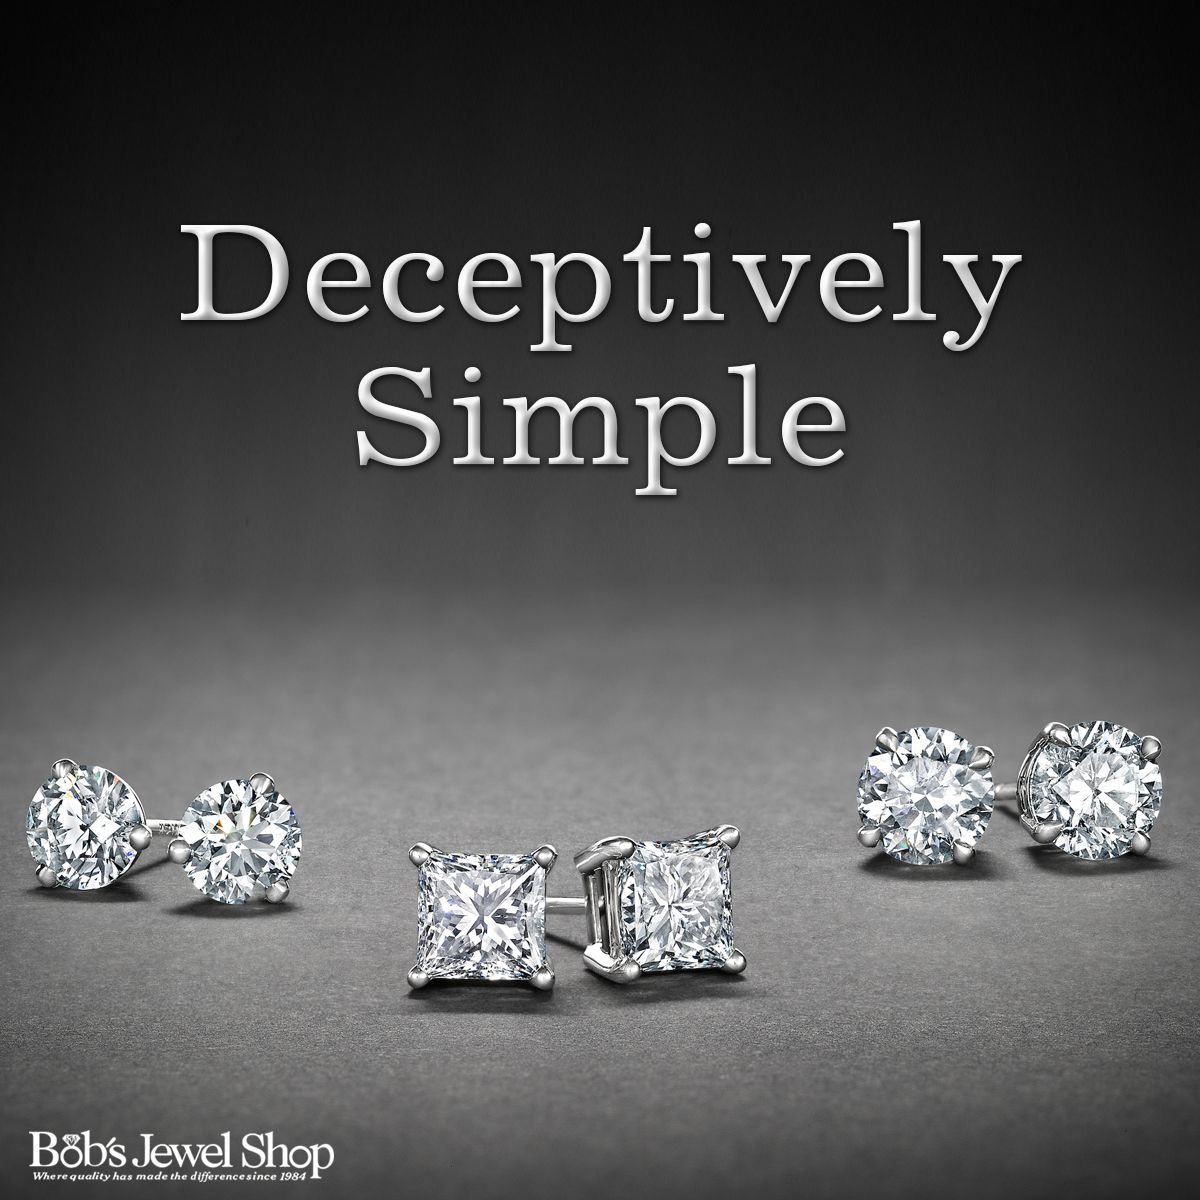 """Simple, elegant, classic.  A diamond stud goes with every outfit!  Do you agree?  """"Share"""" if you'd like a pair!  #Diamonds #DiamondStuds #Classic"""